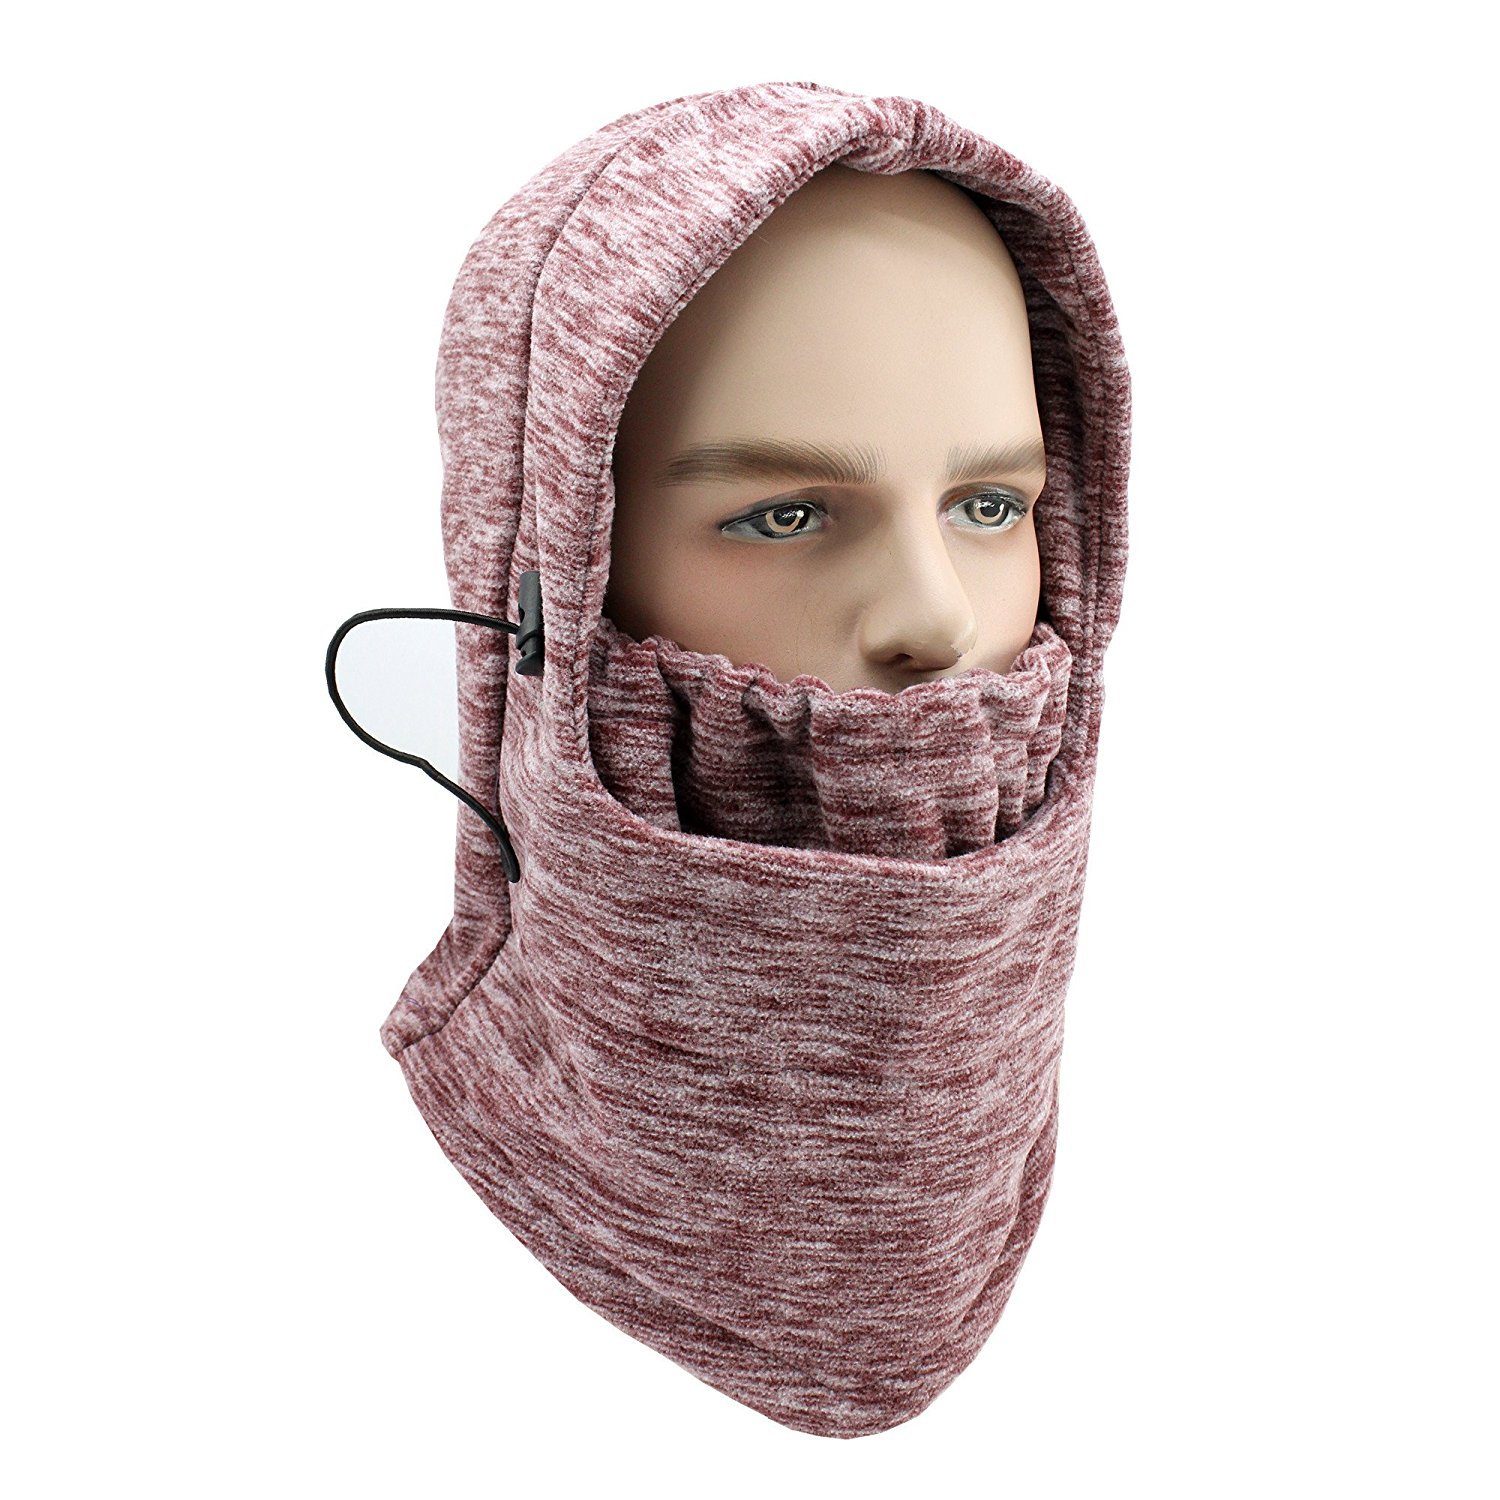 4ec7eb8ebfd Get Quotations · ViewHuge Men Women Winter Soft Windproof Ski Mask Full Face  Mask Motorcycle Neck Warmer Thermal Running